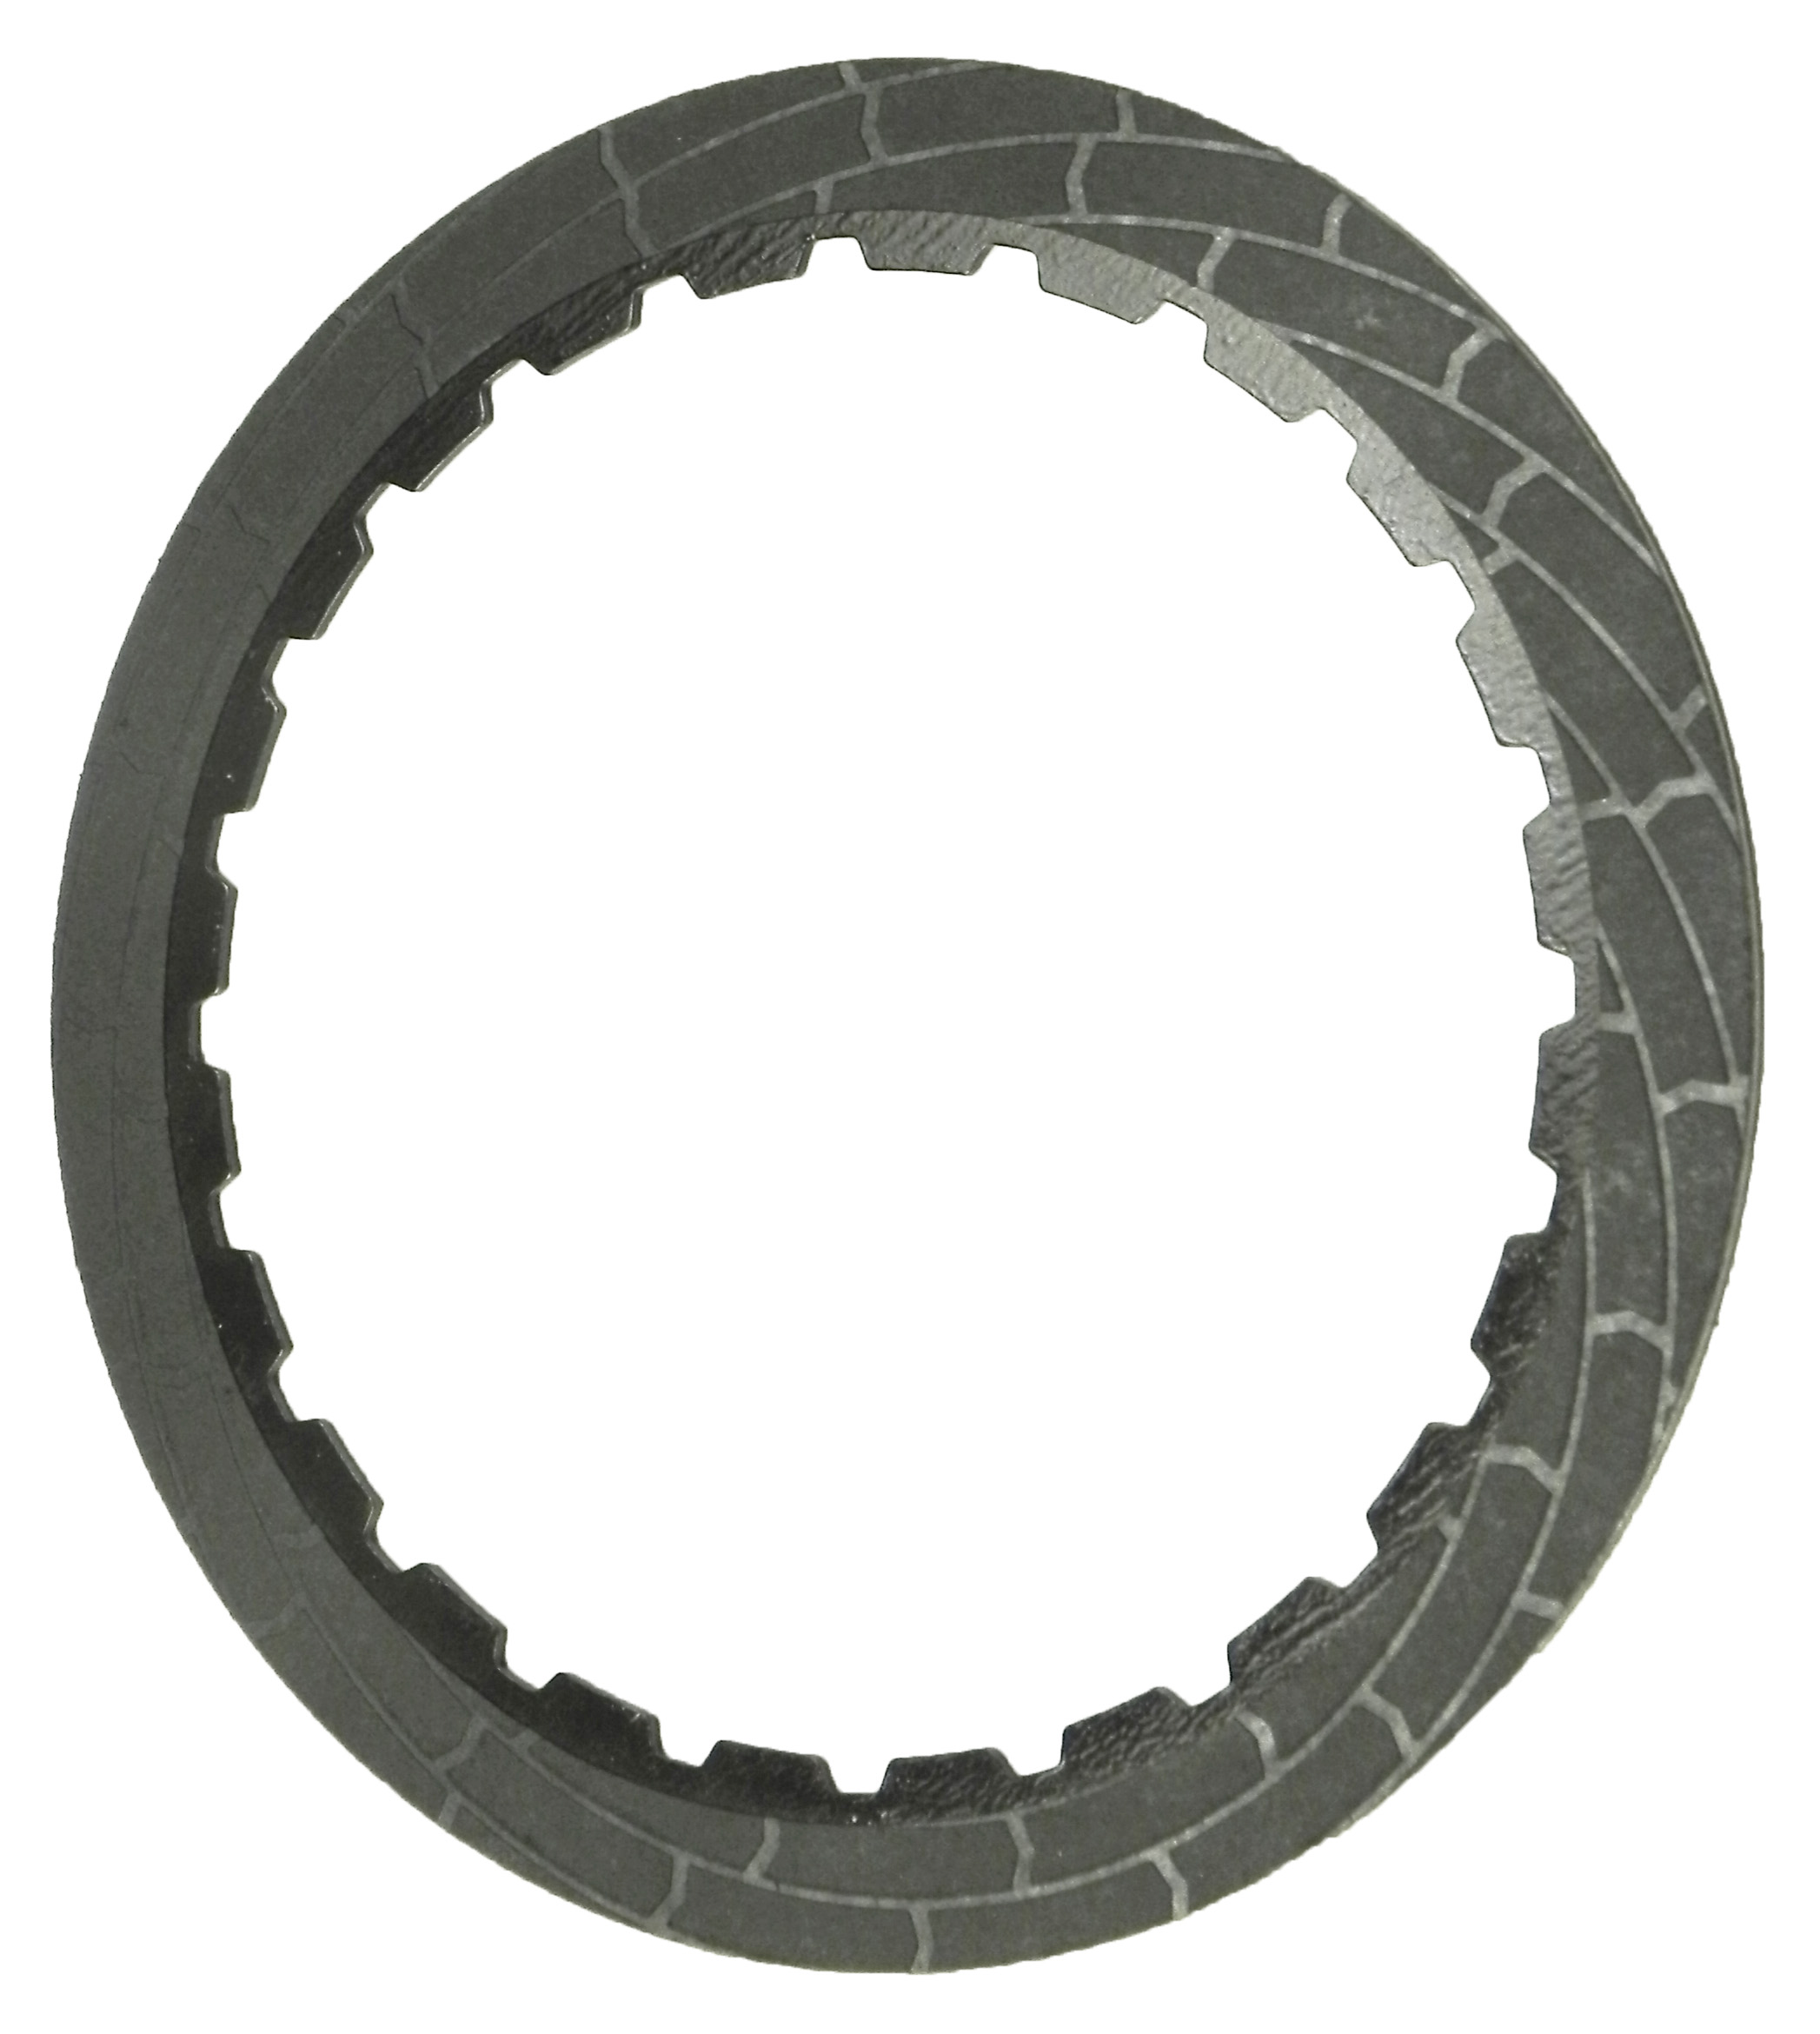 RH558510 | 2007-ON Friction Clutch Plate (HT) Hybrid Technology 4, 5, 6 Clutch Proprietary High Energy (HT)